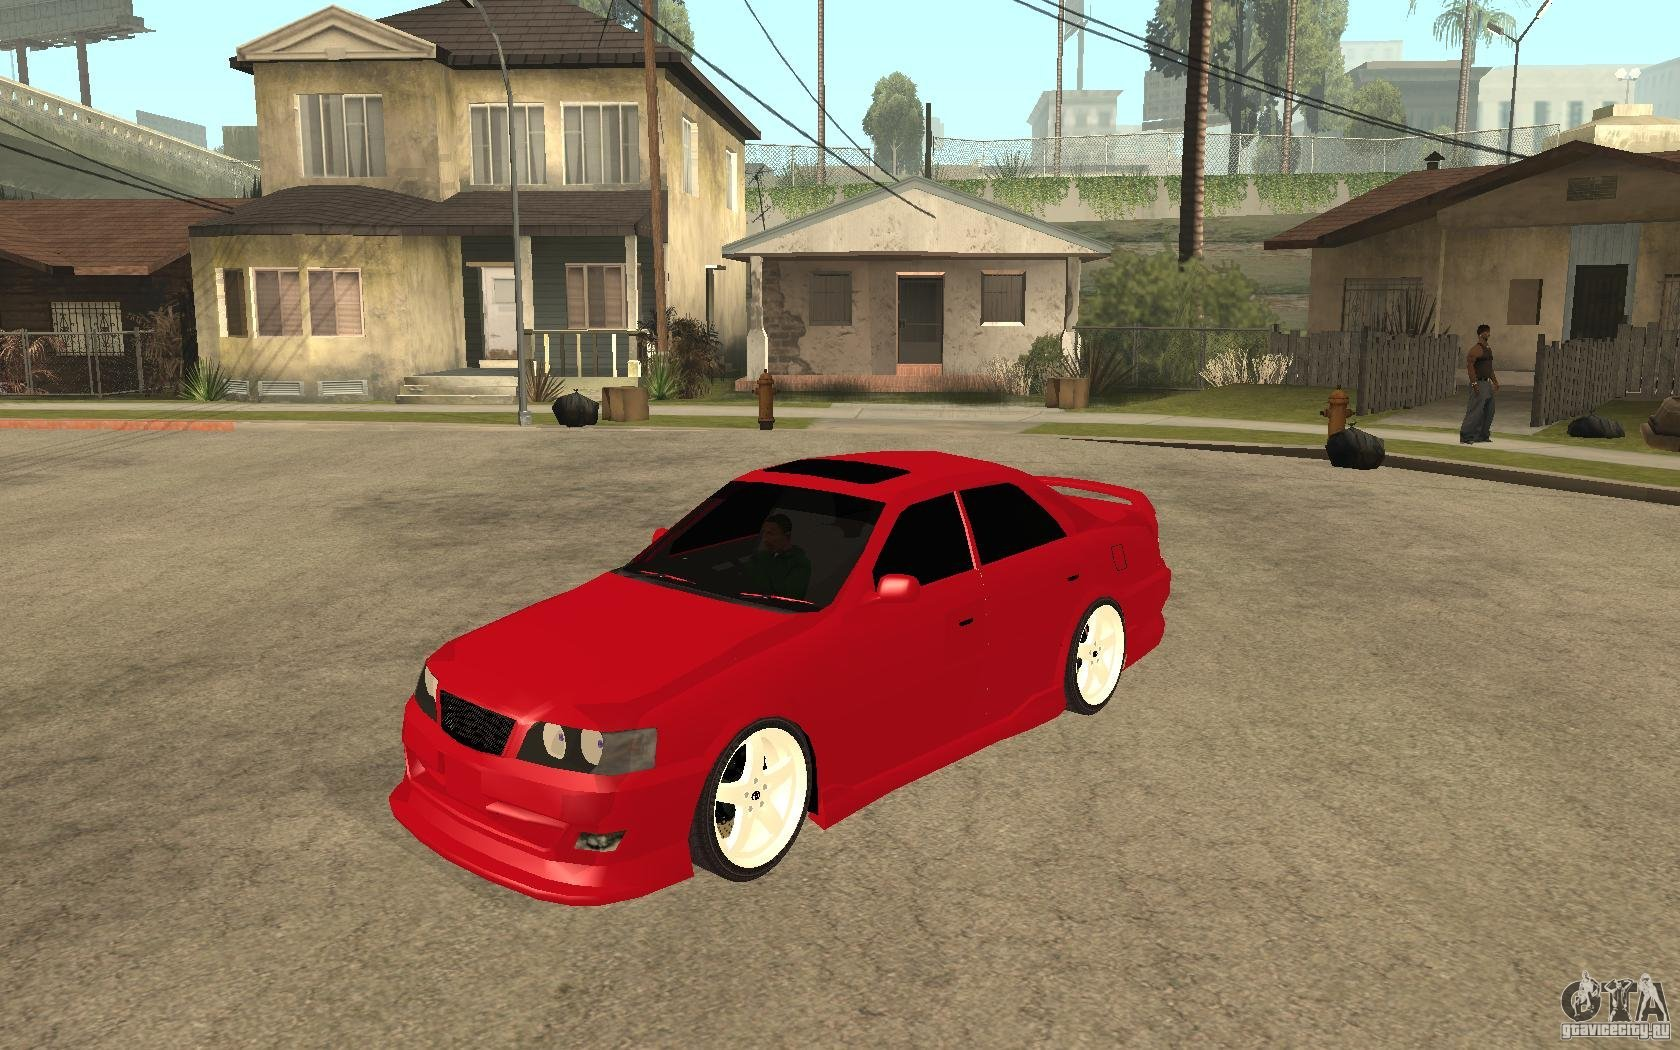 Cars toyota chaser (zx 100) 1999 #8